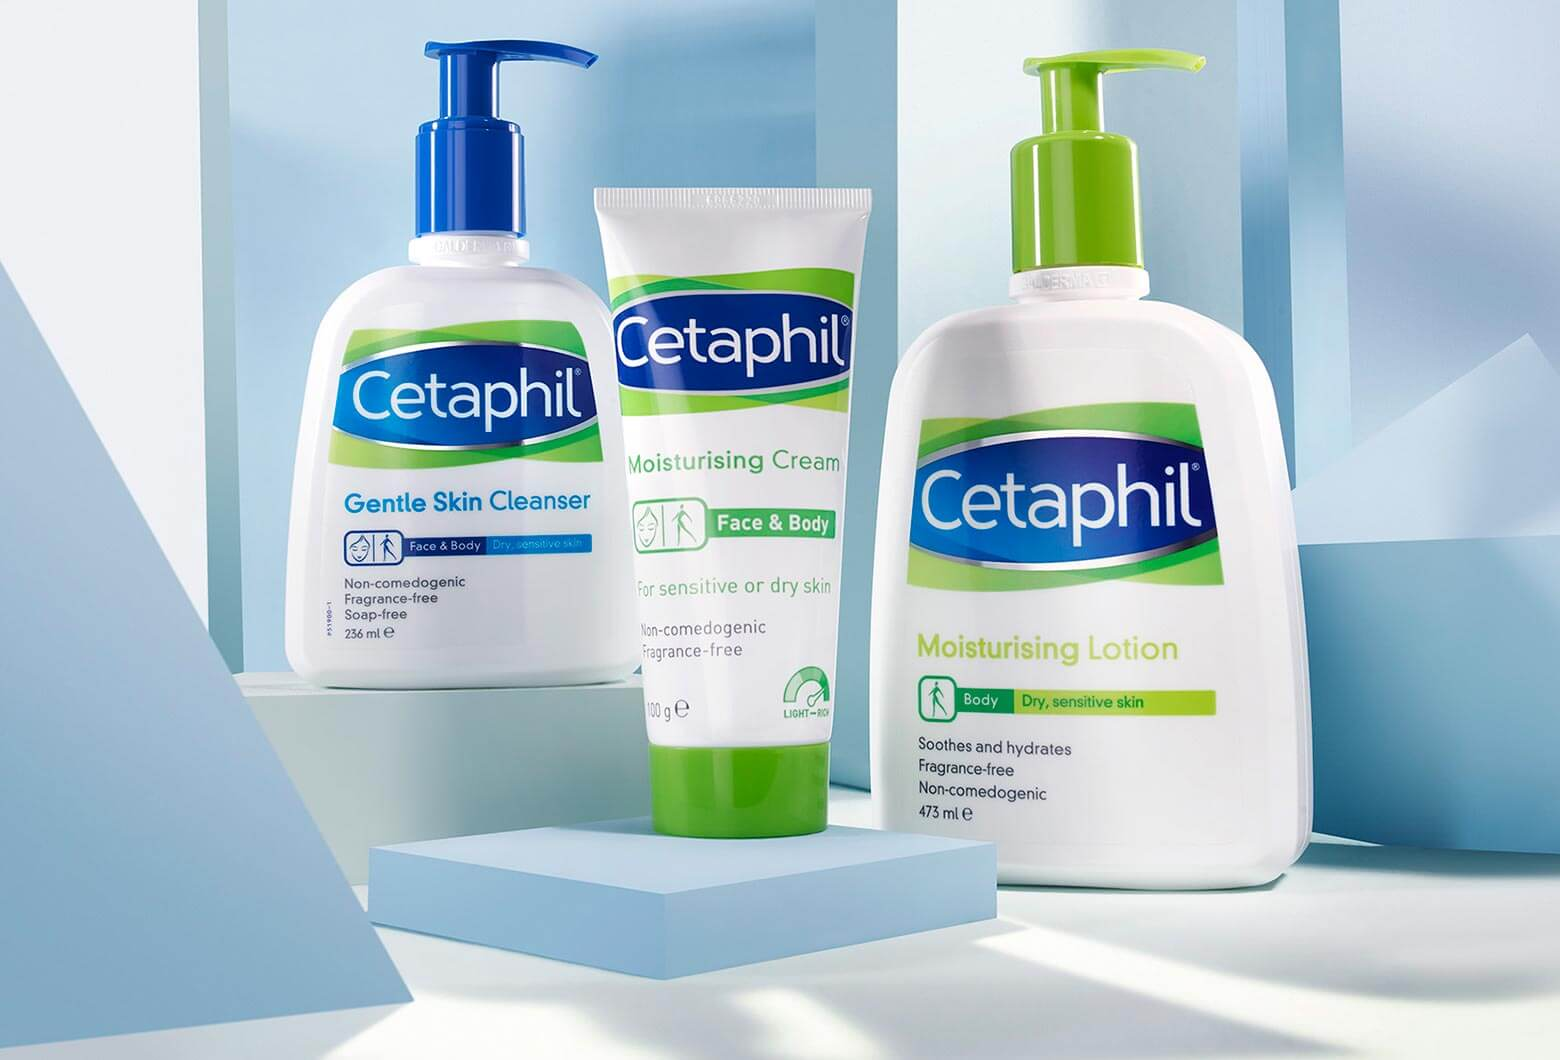 A range of Cetaphil products